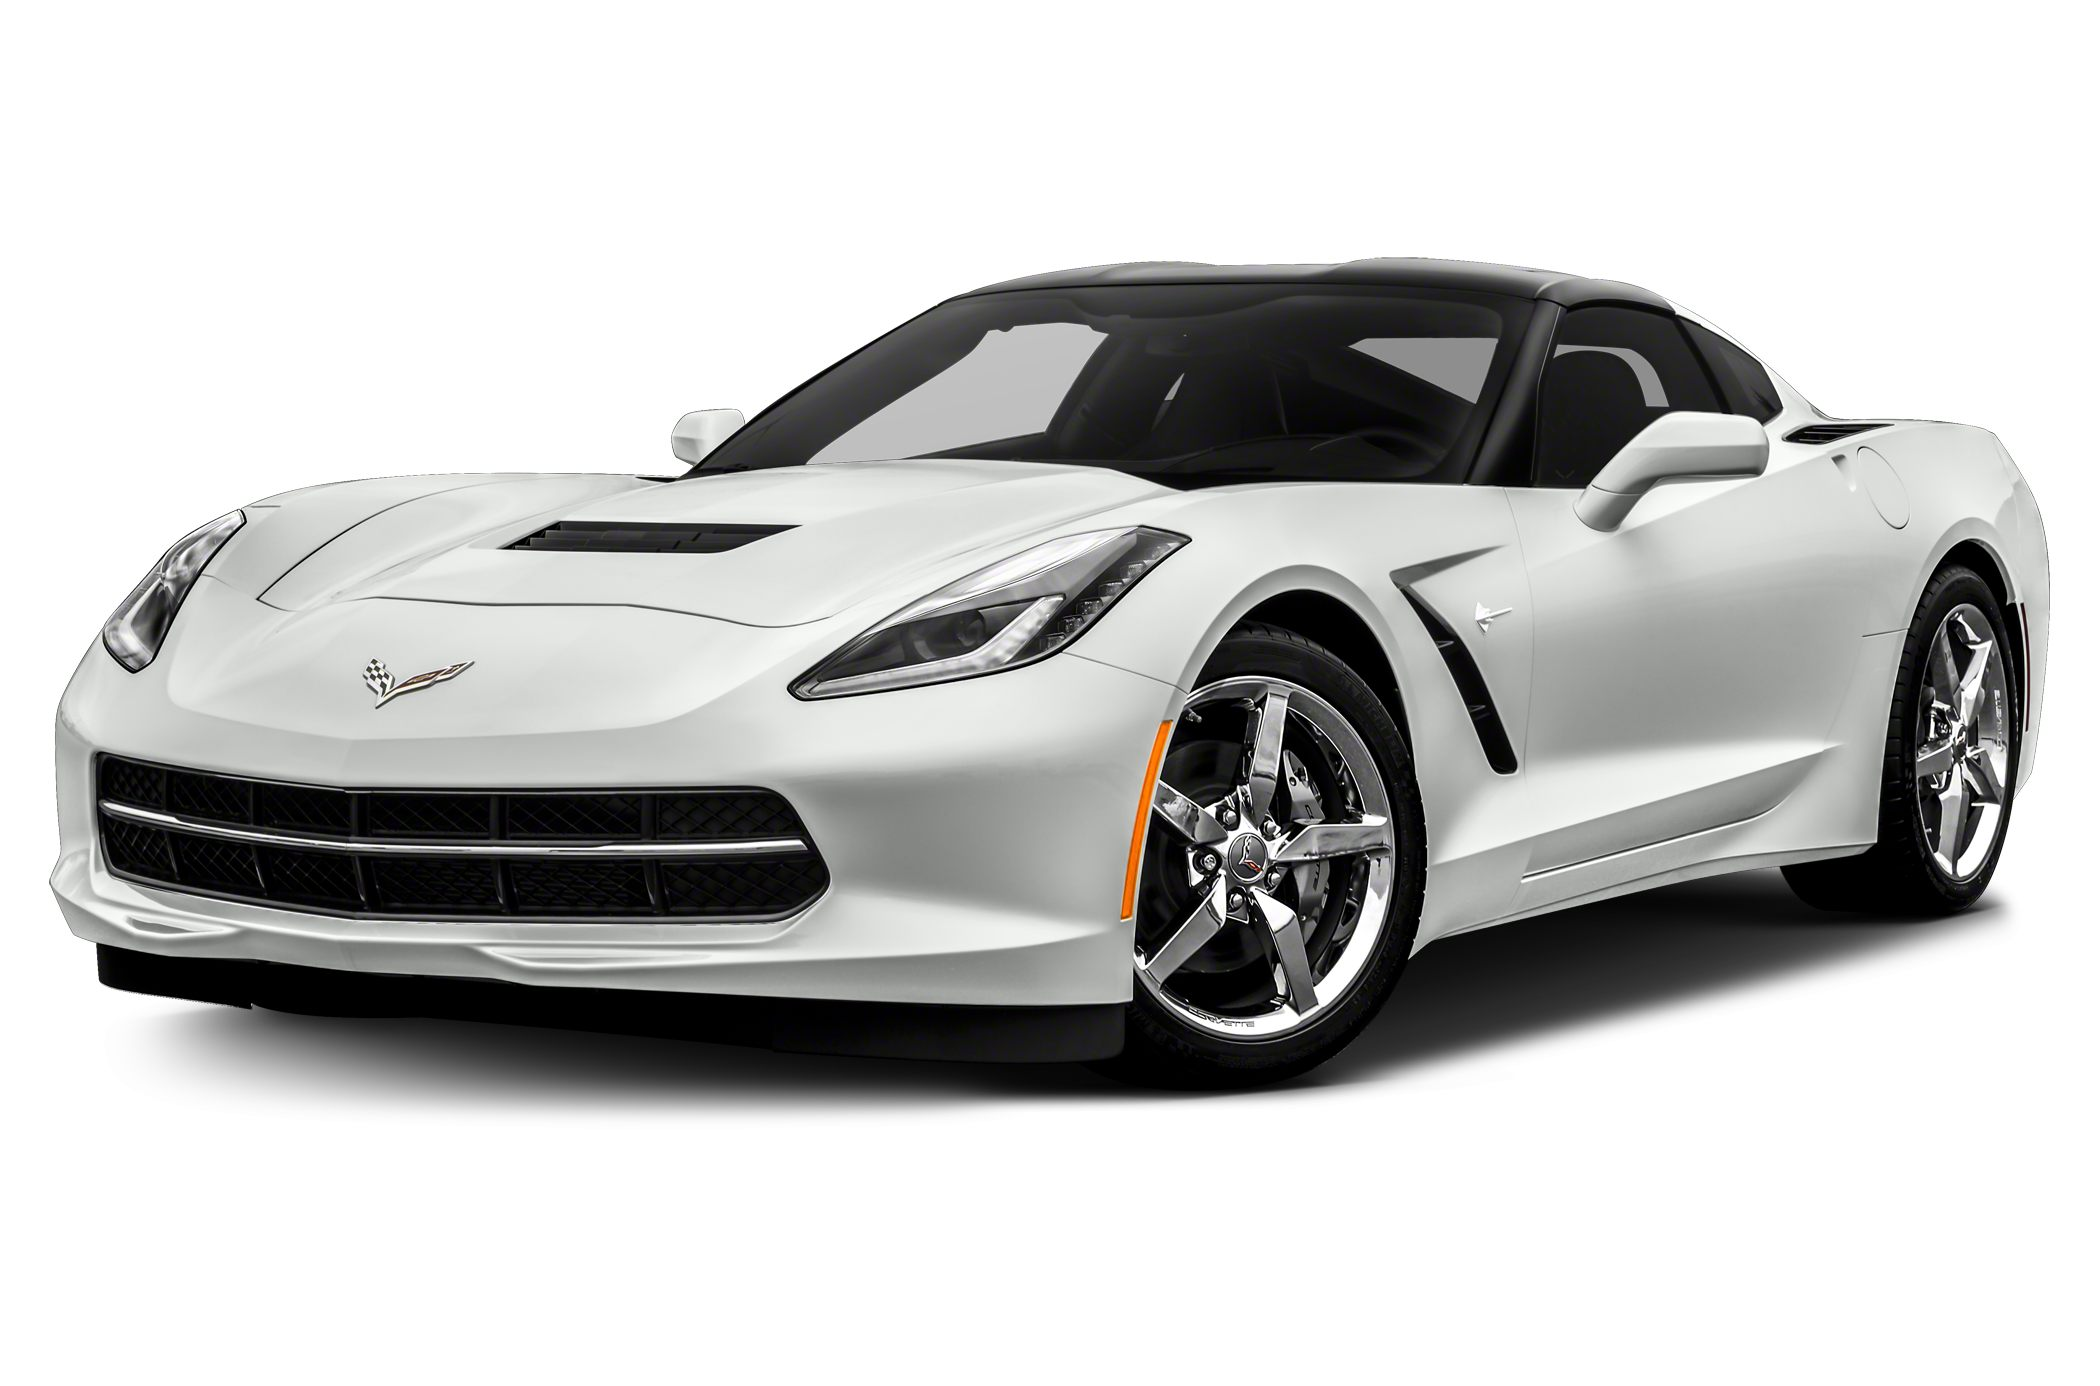 2014 Chevrolet Corvette Stingray Base Convertible for sale in Victorville for $69,680 with 0 miles.